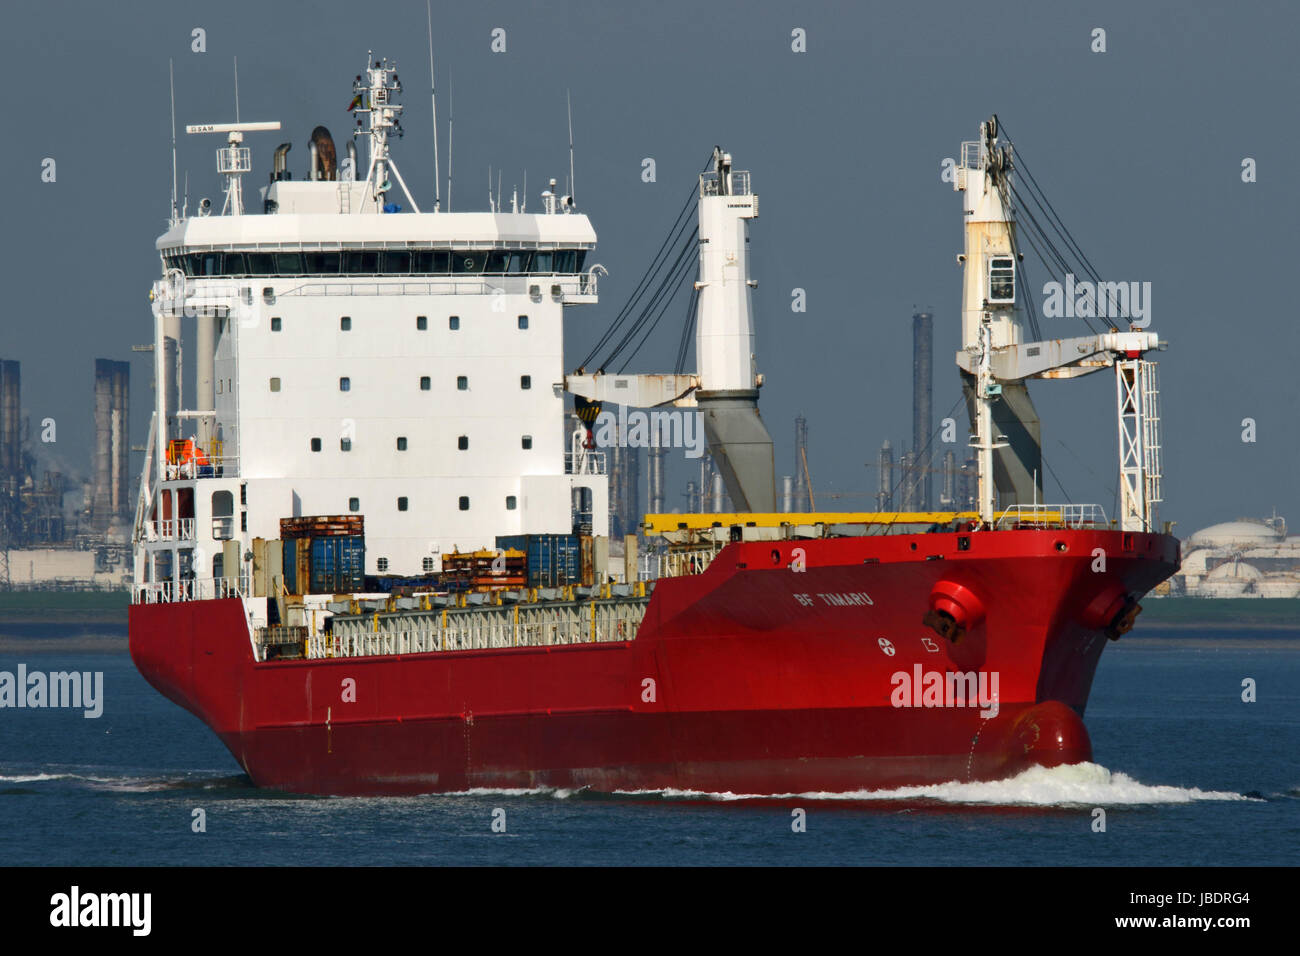 The general cargo ship BF Timaru passes Terneuzen and continues to the port of Antwerp. - Stock Image